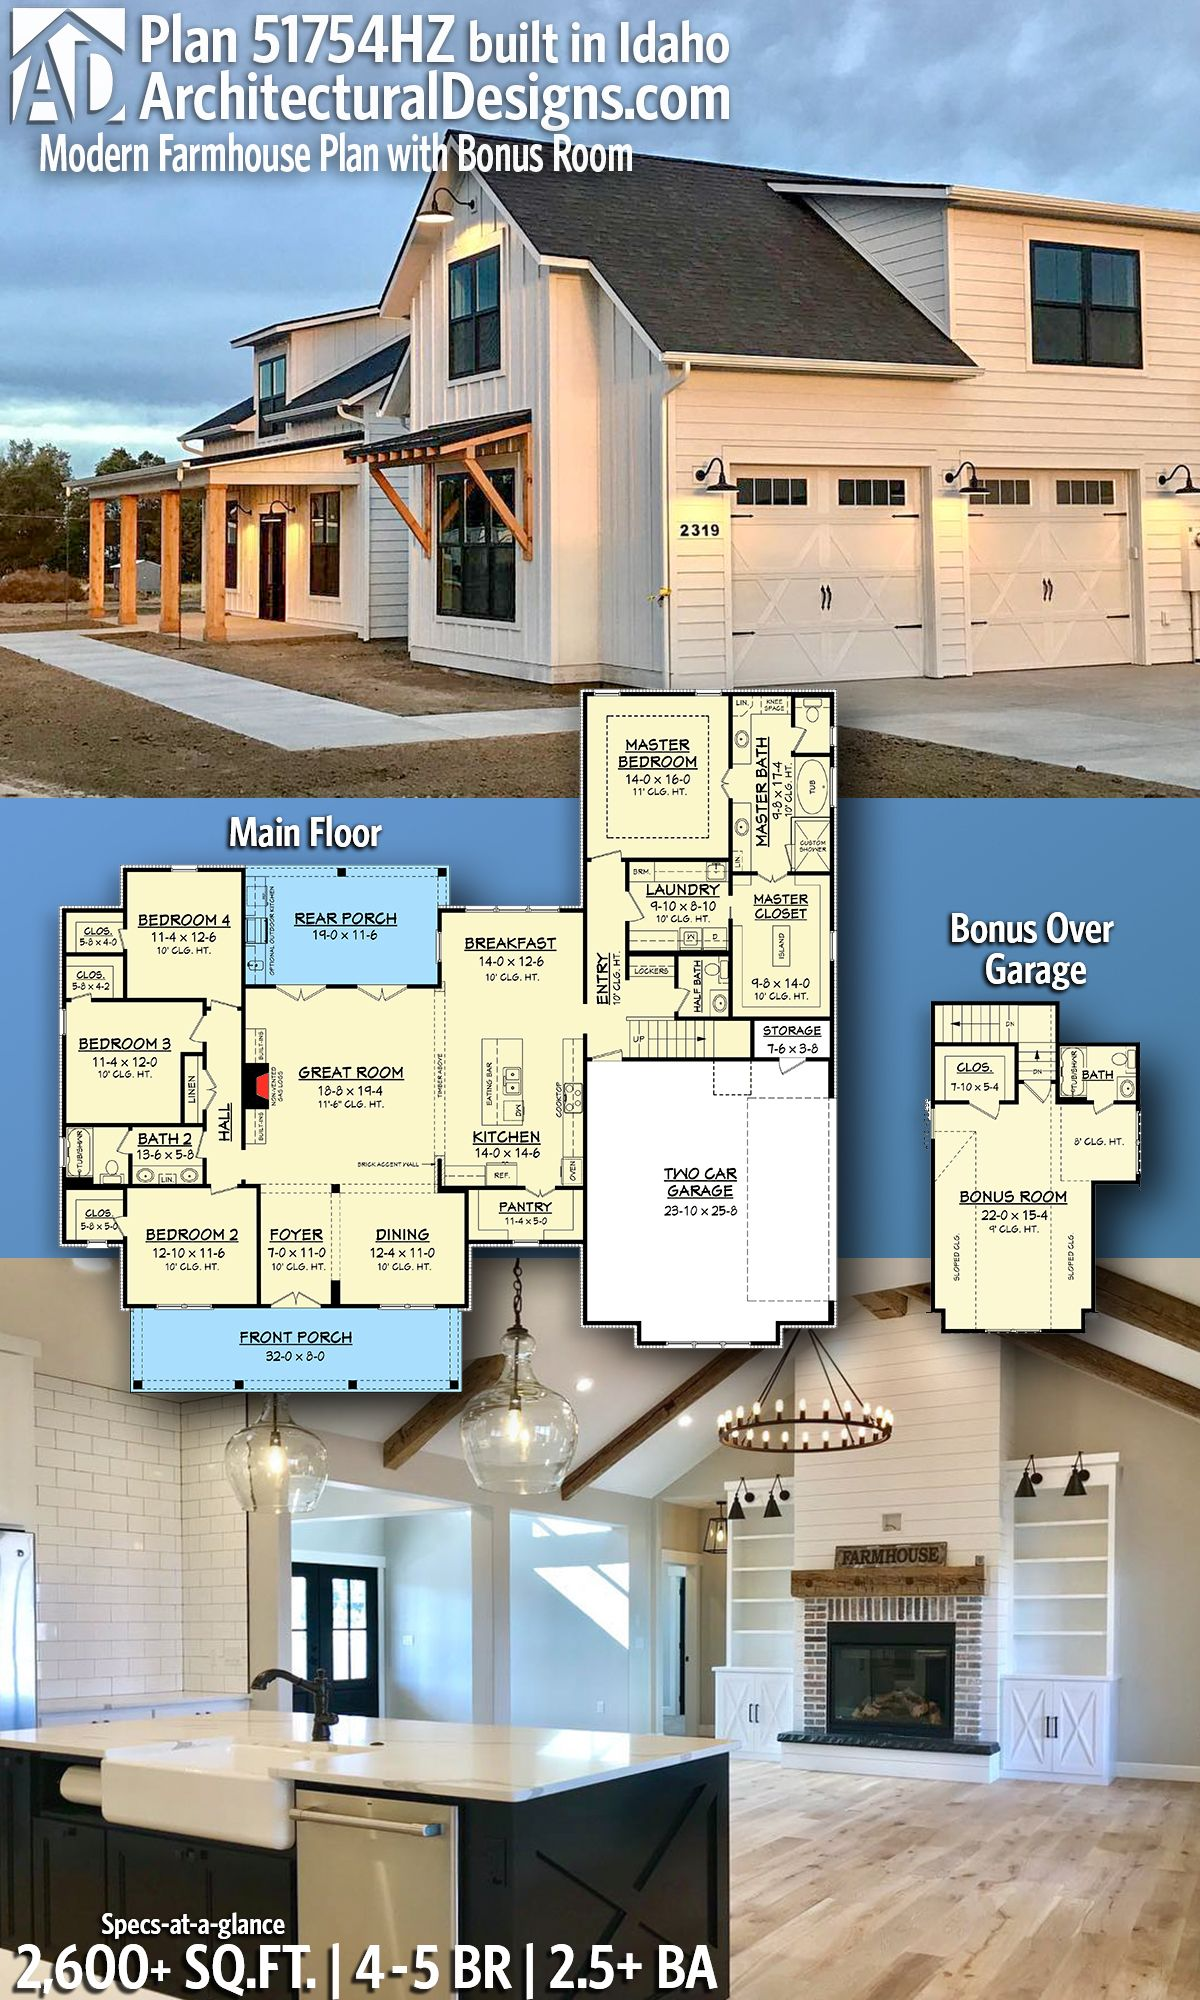 Great Option Add Garage And Make Garage Loft Into Second Master